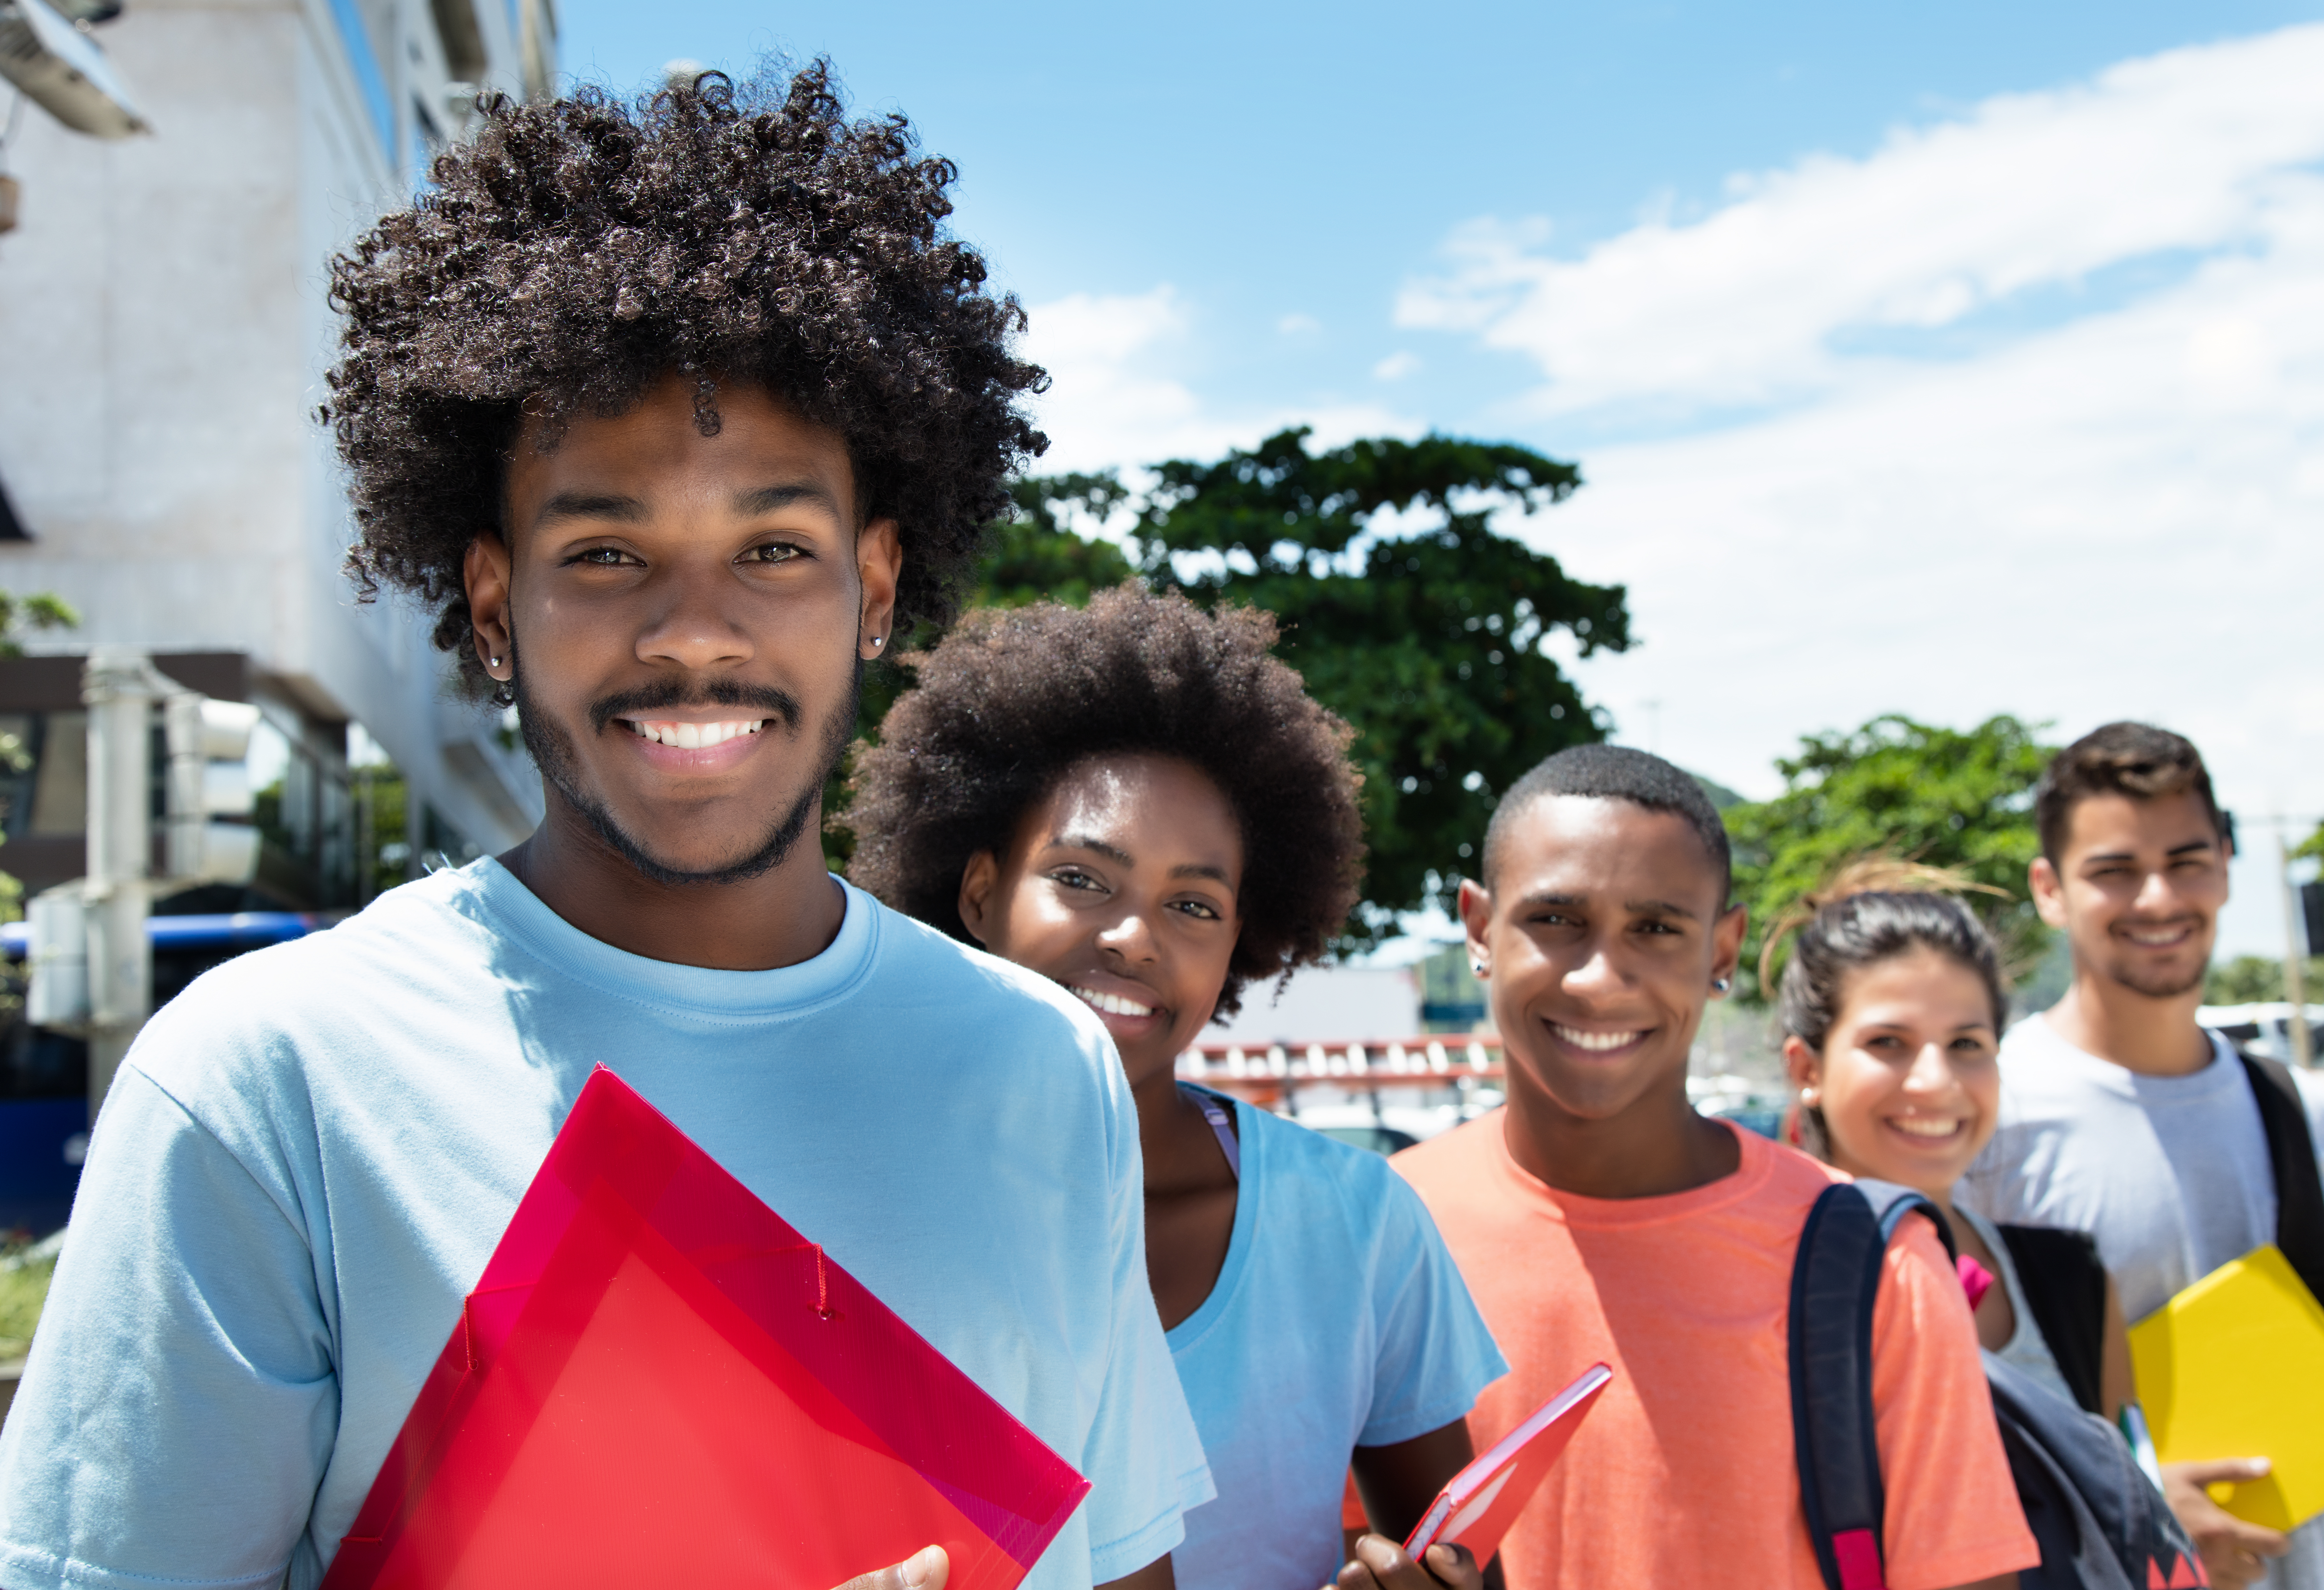 Group of multi-racial students smiling at camera